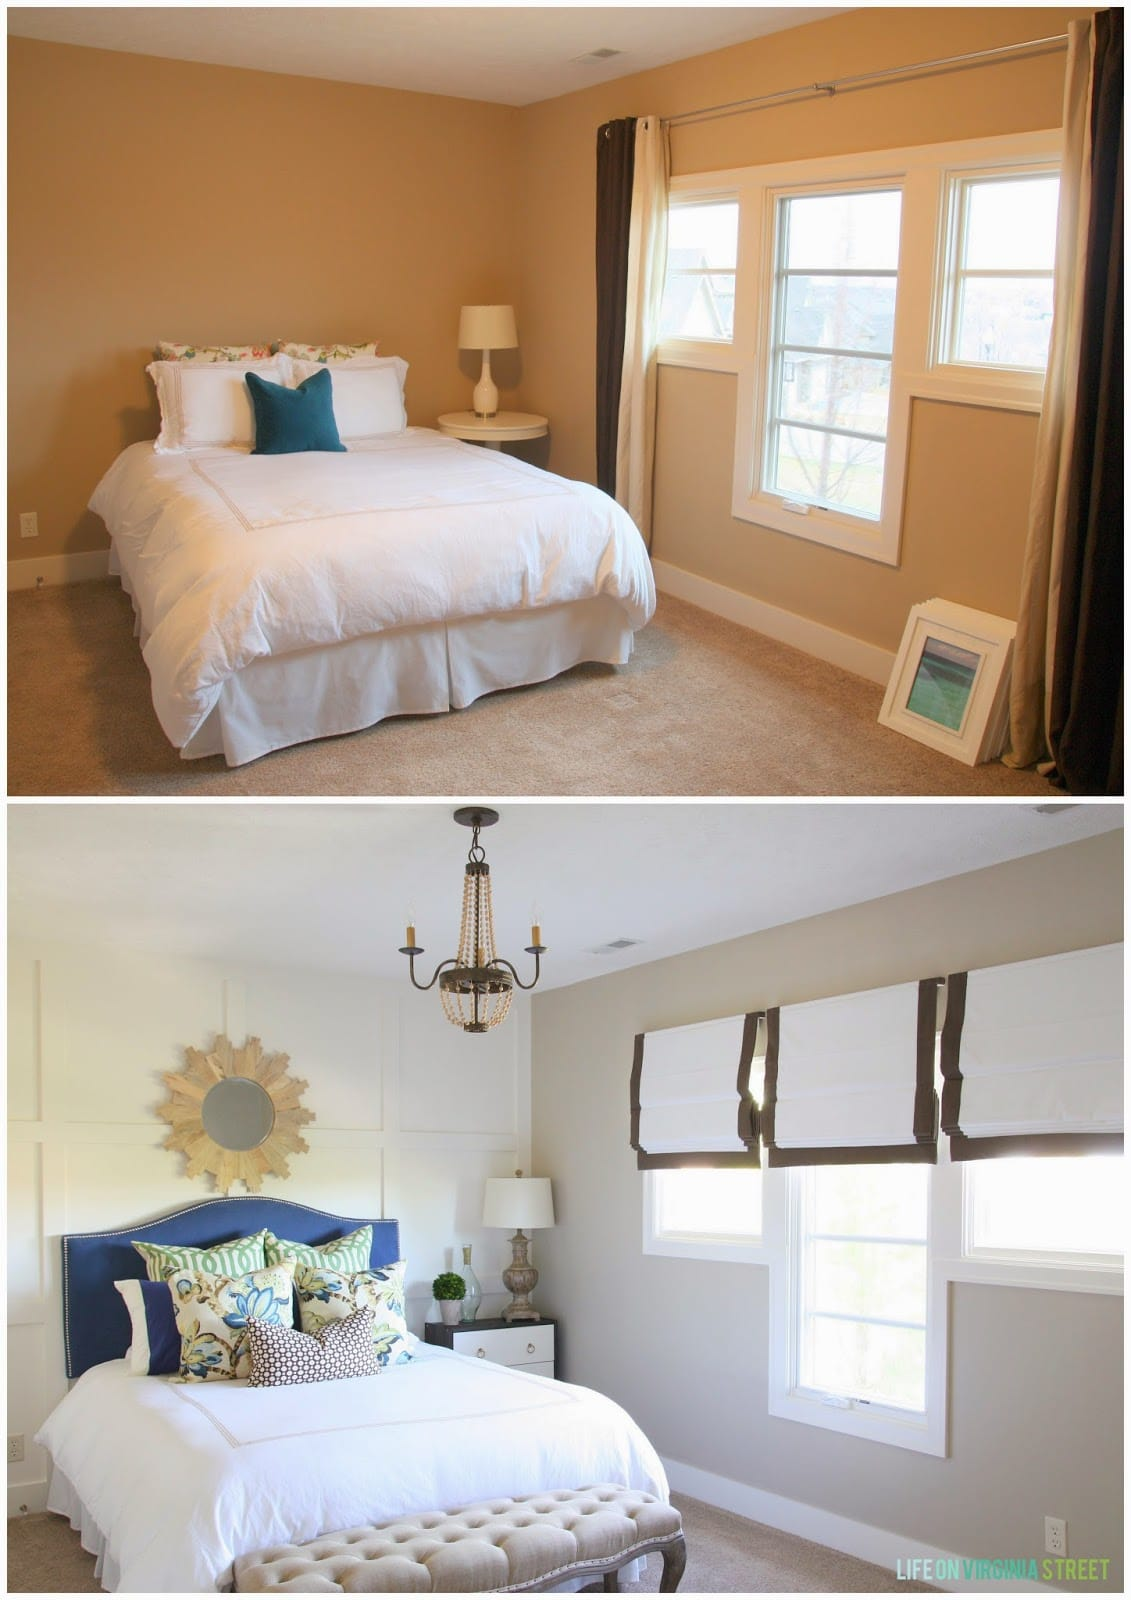 Bedroom Makeovers Before And After guest bathroom makeover: before and after - life on virginia street